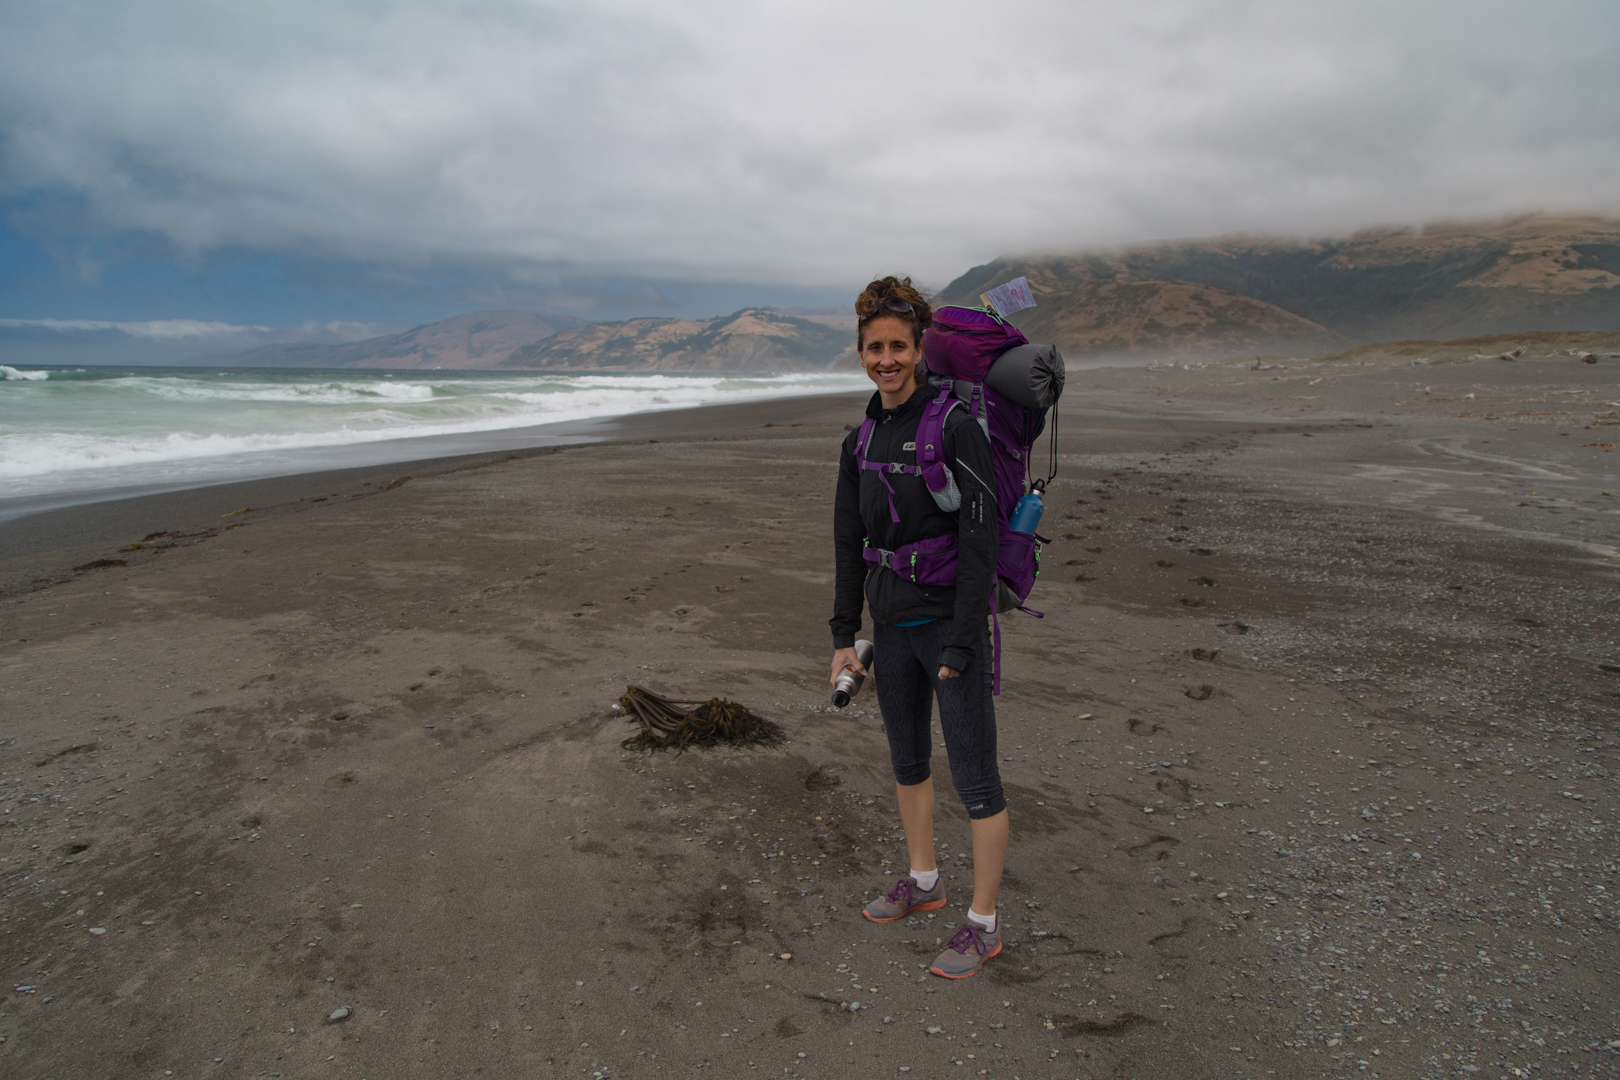 Off to the Lost Coast!